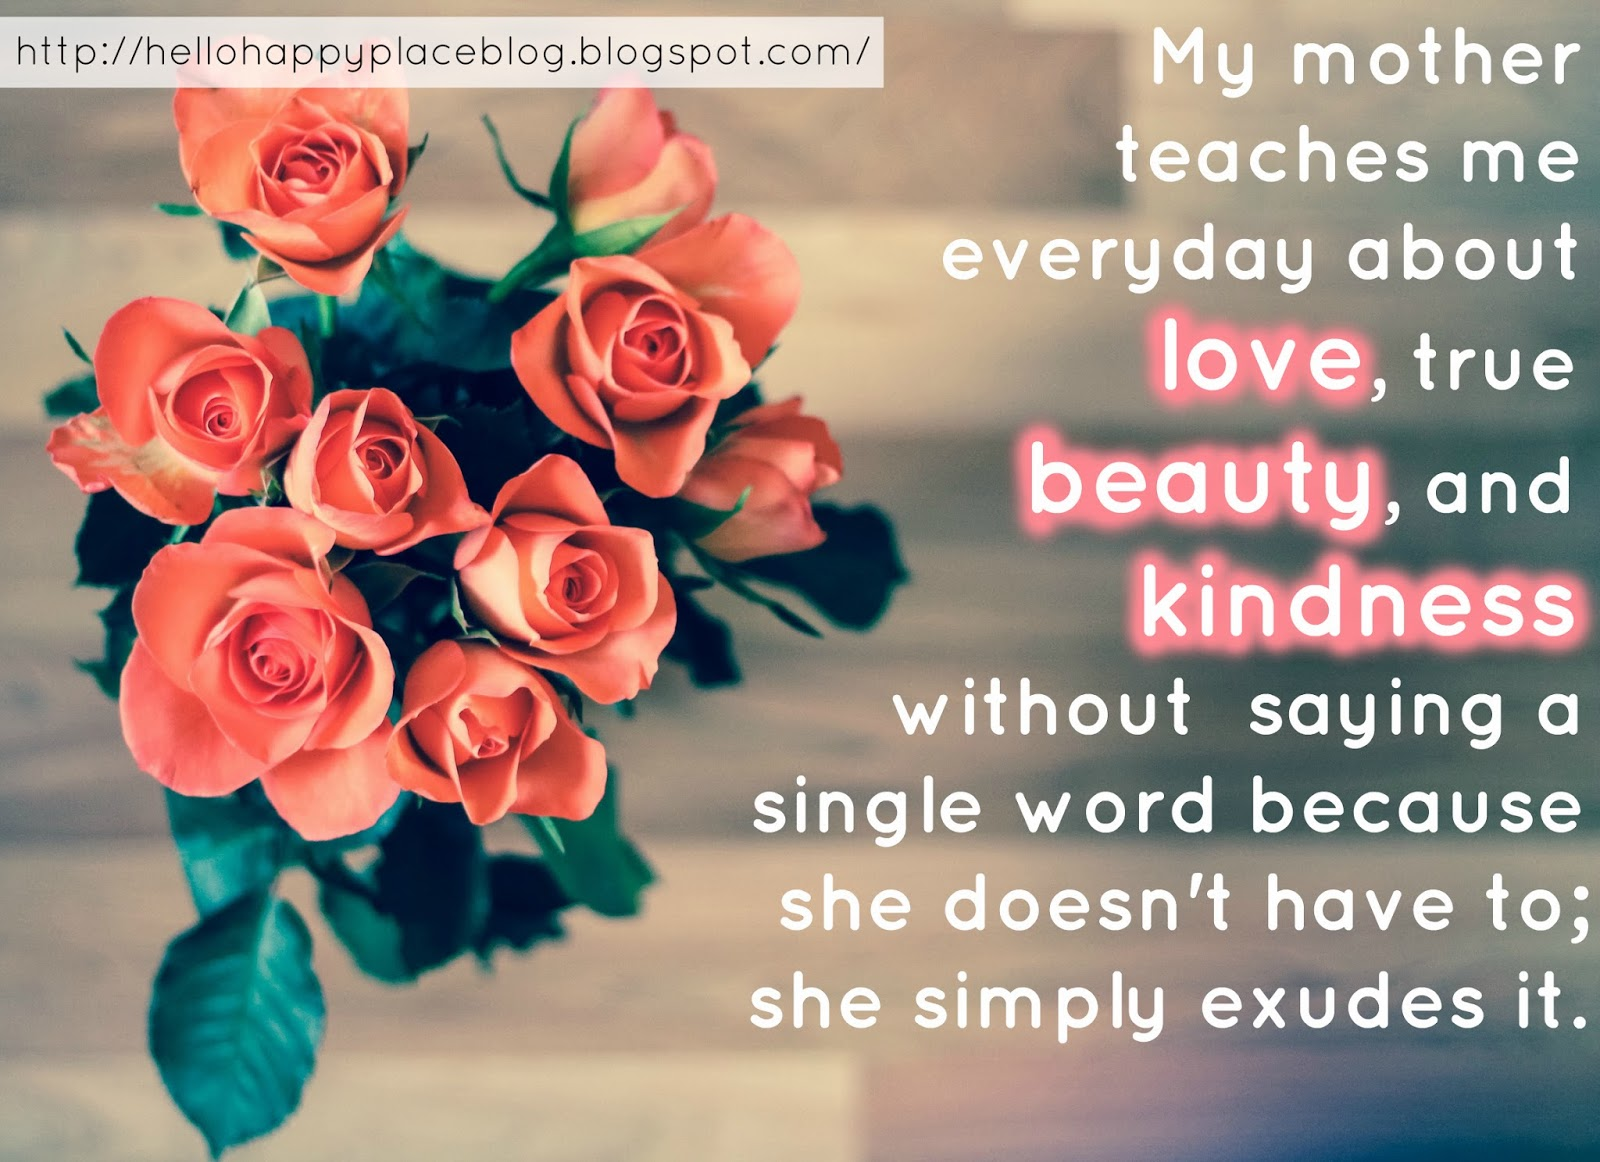 My mother teaches me everyday about love, true beauty, and kindness without  saying a single word because she doesn't have to; she simply exudes it. I thank God for my Mother.